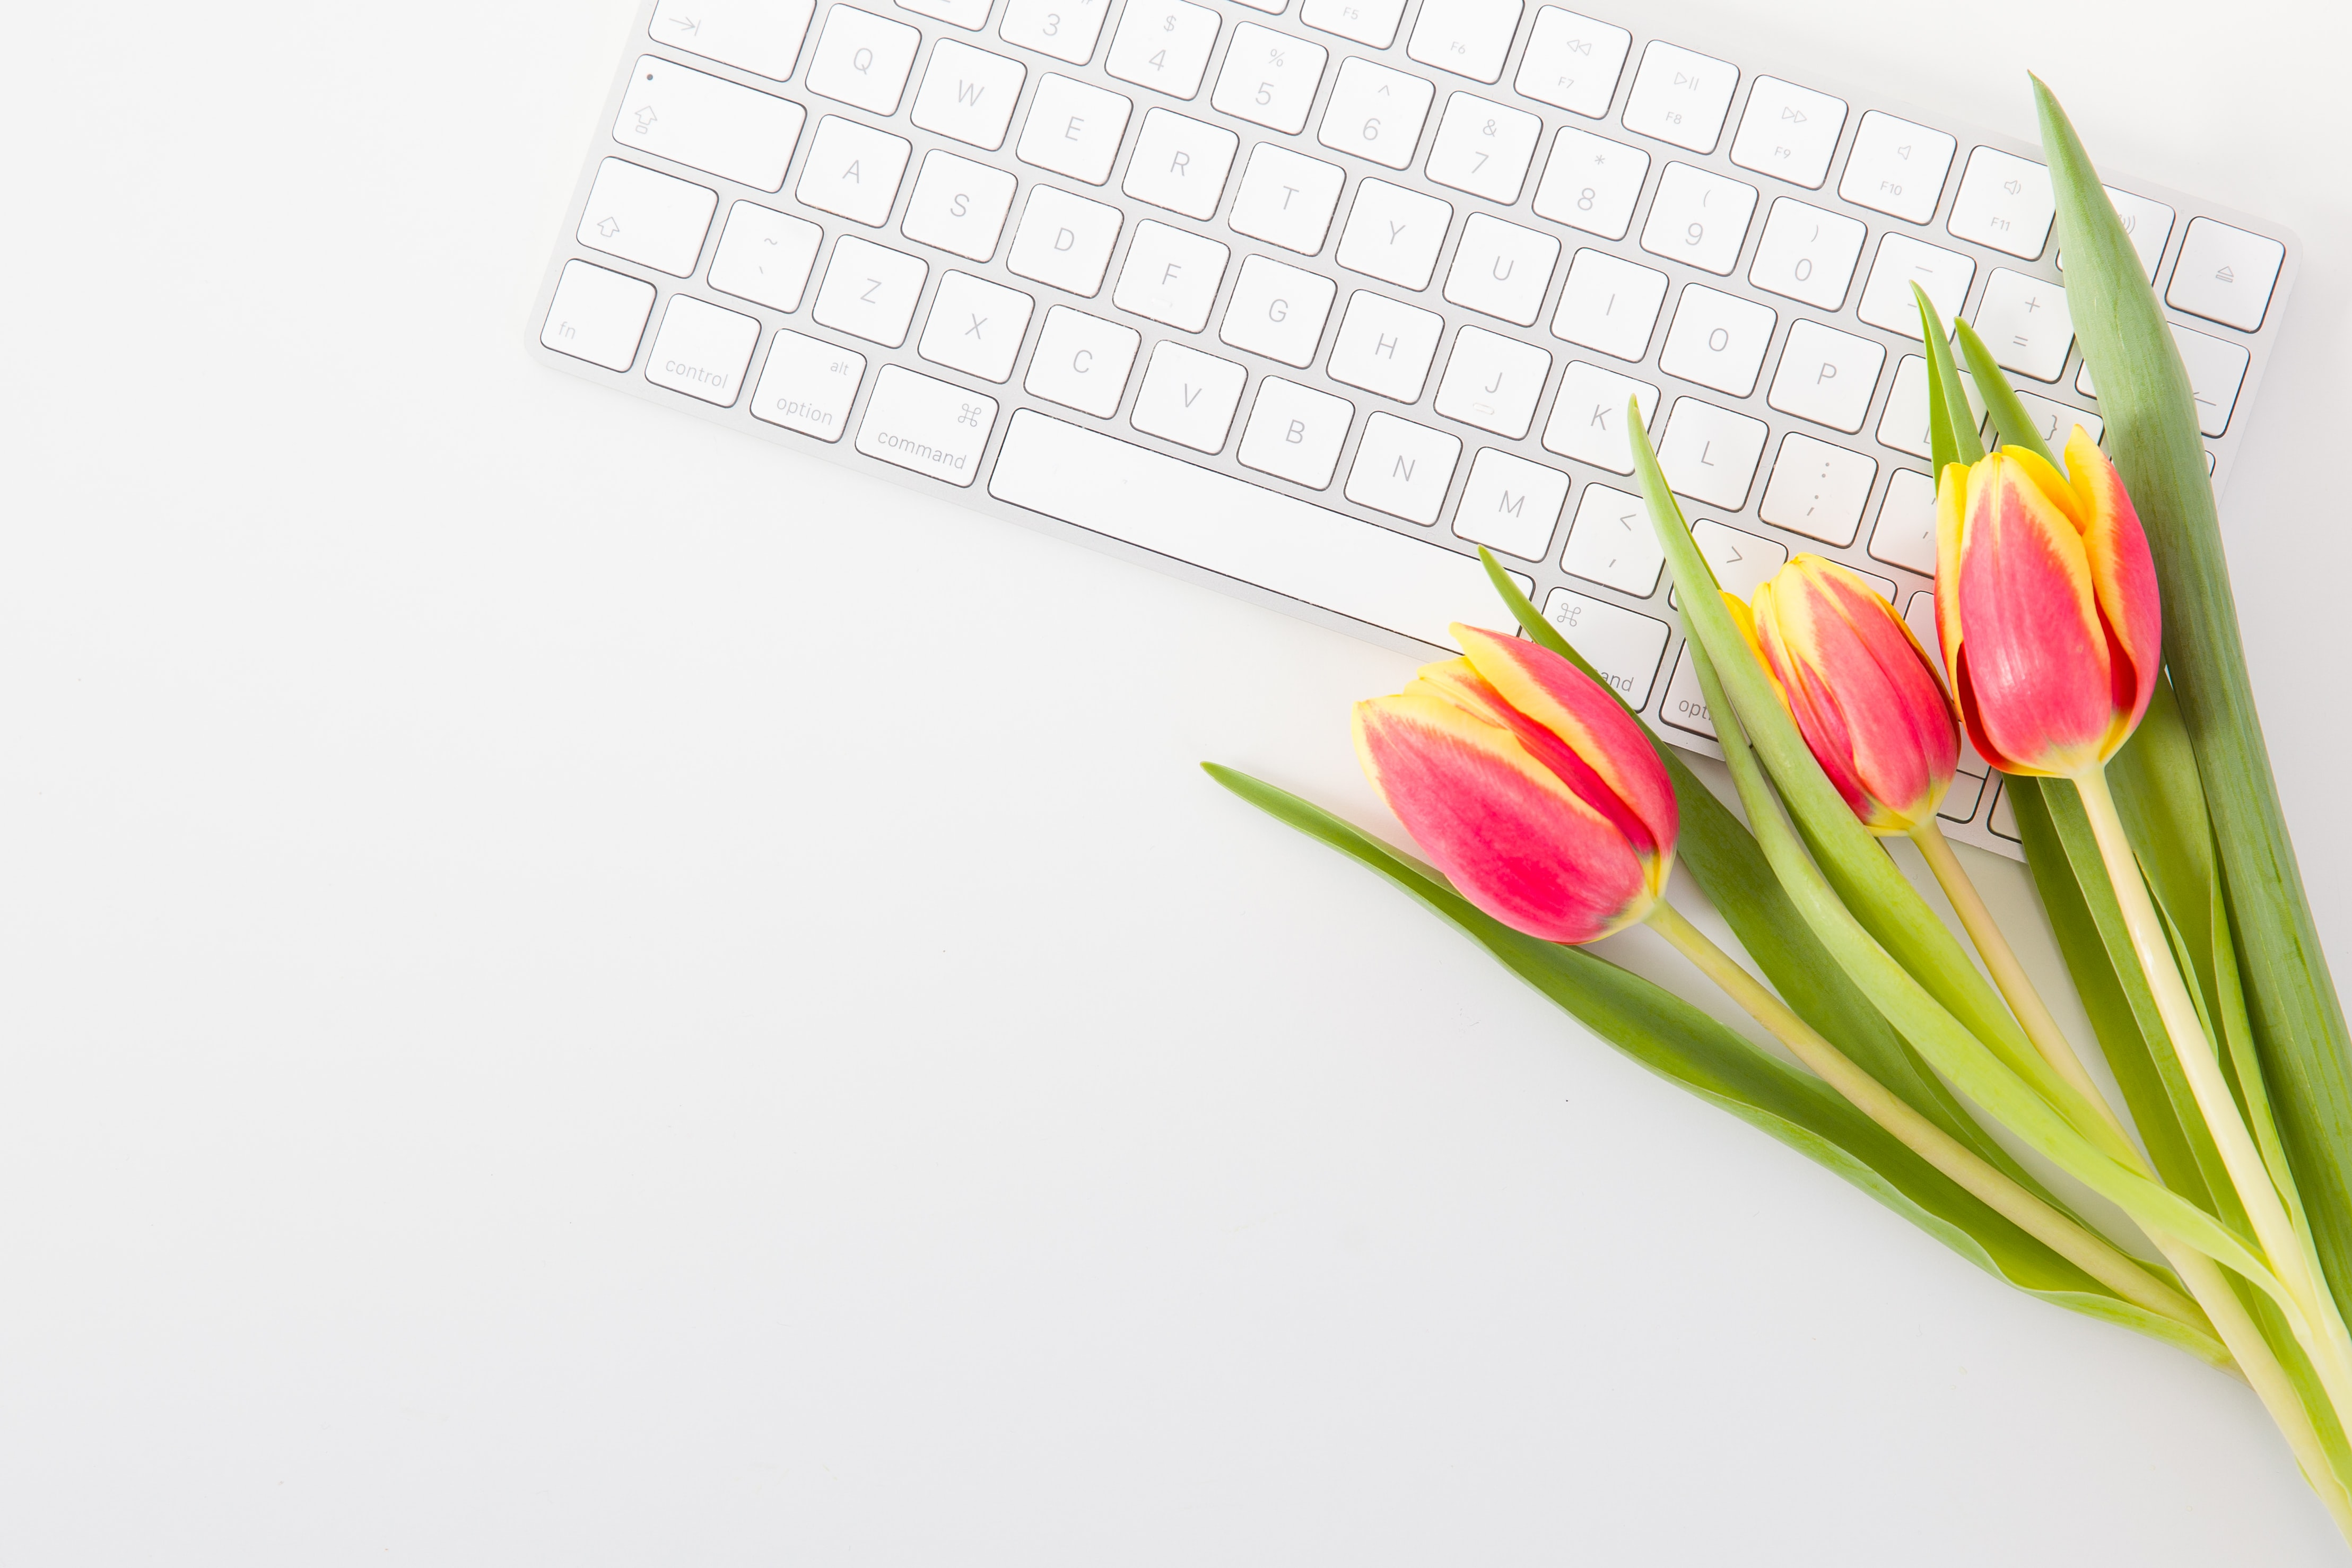 Keyboard with flowers